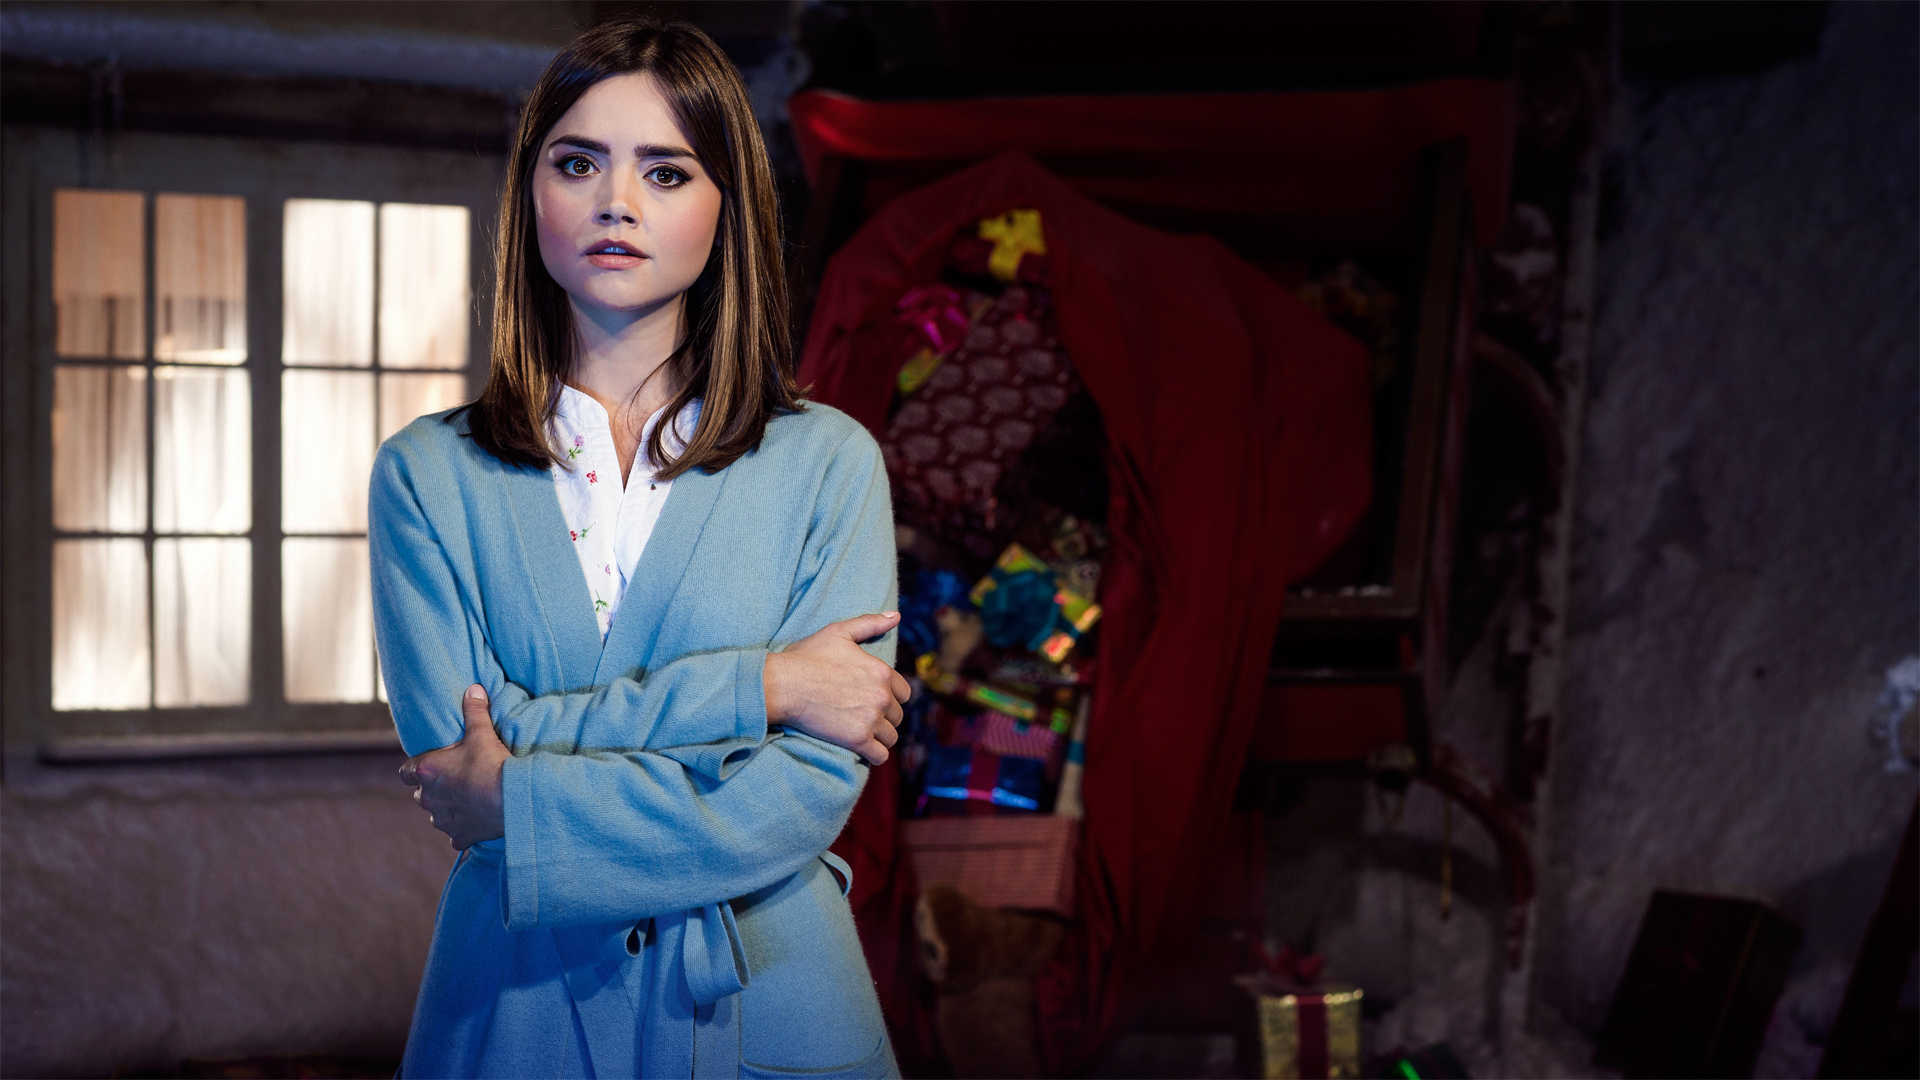 Last Christmas Doctor Who.Doctor Who 10 Things You May Not Know About Last